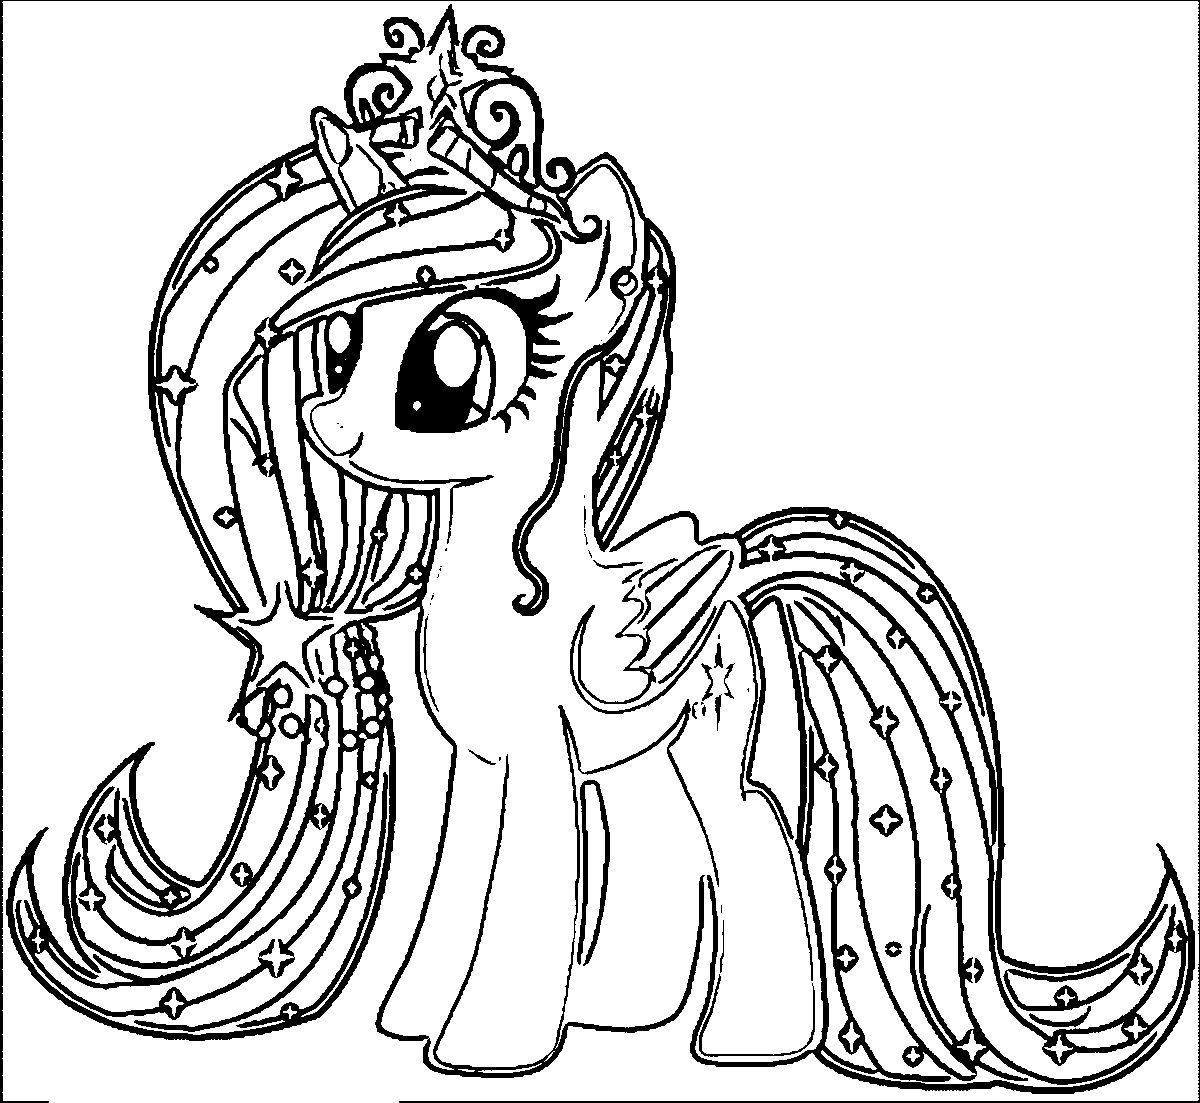 coloring page my little pony my little pony coloring pages for pony lovers educative my coloring pony page little